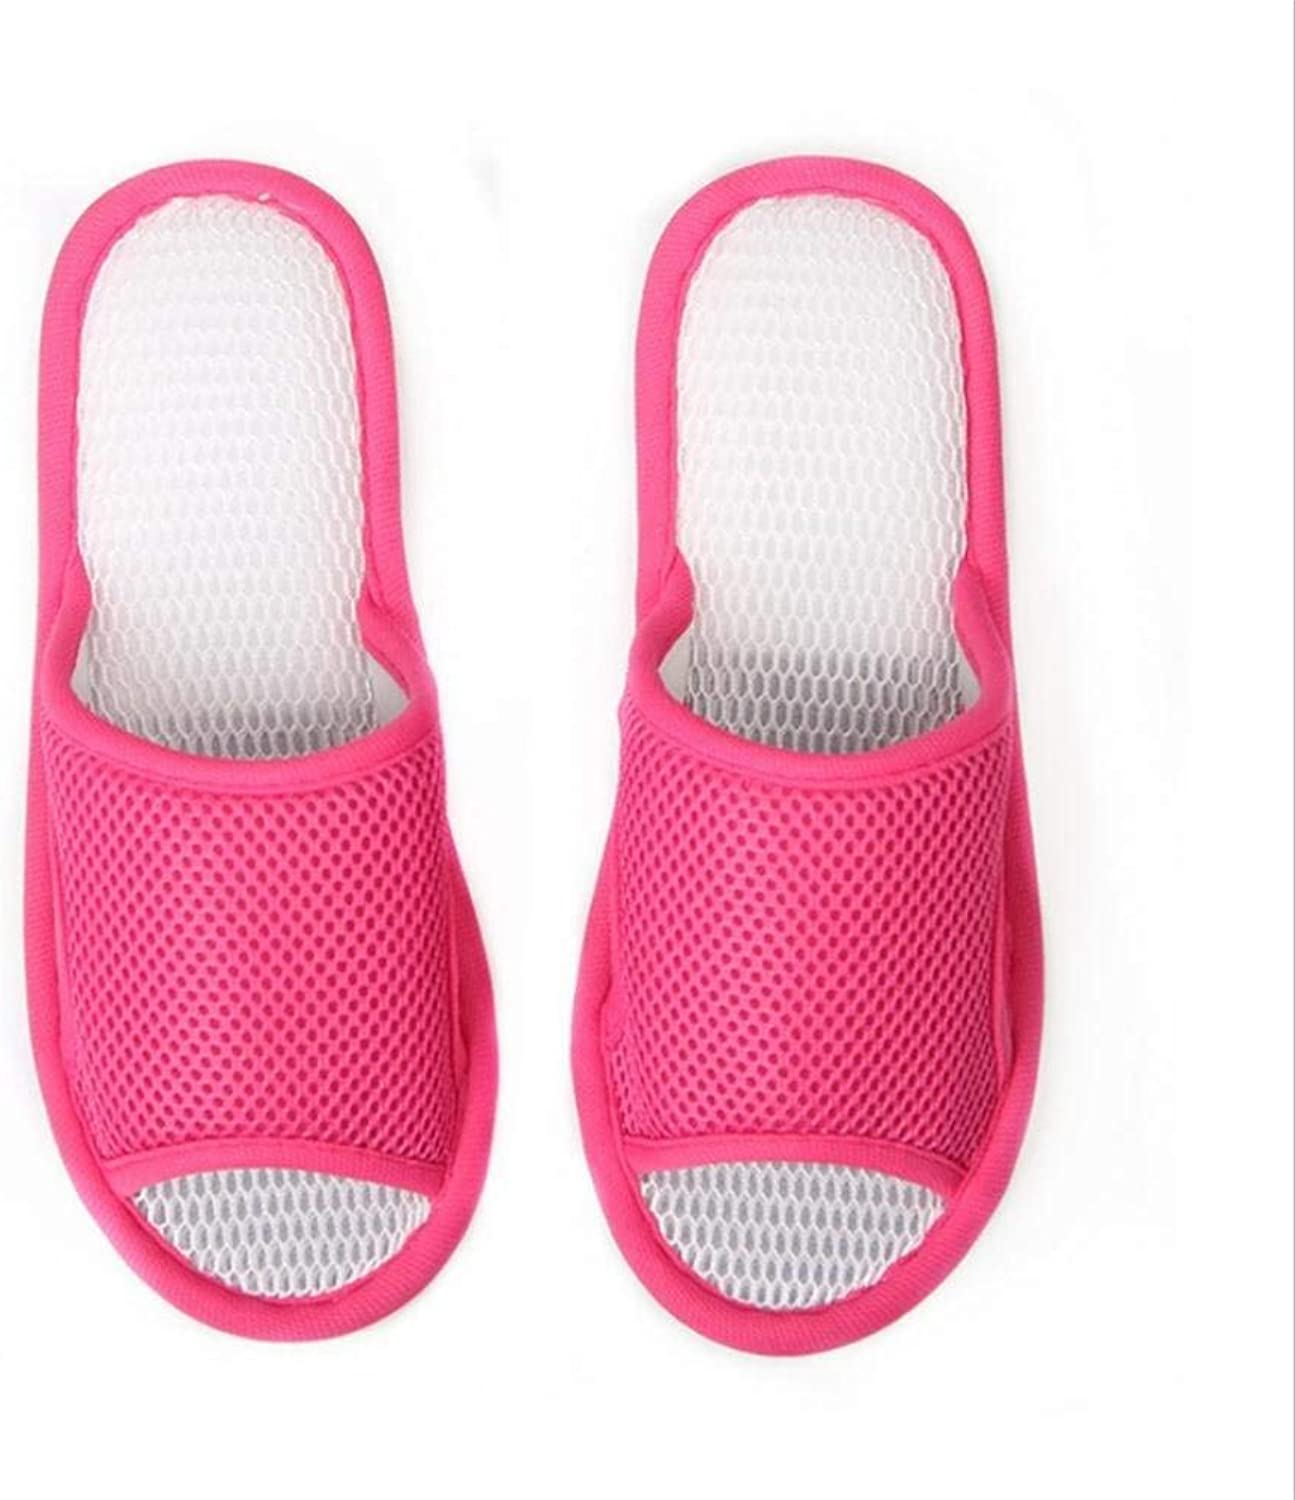 JaHGDU Women's Mesh Slippers pink Red Green Casual Home Interior Flooring Non-Slip Slippers Summer for Women